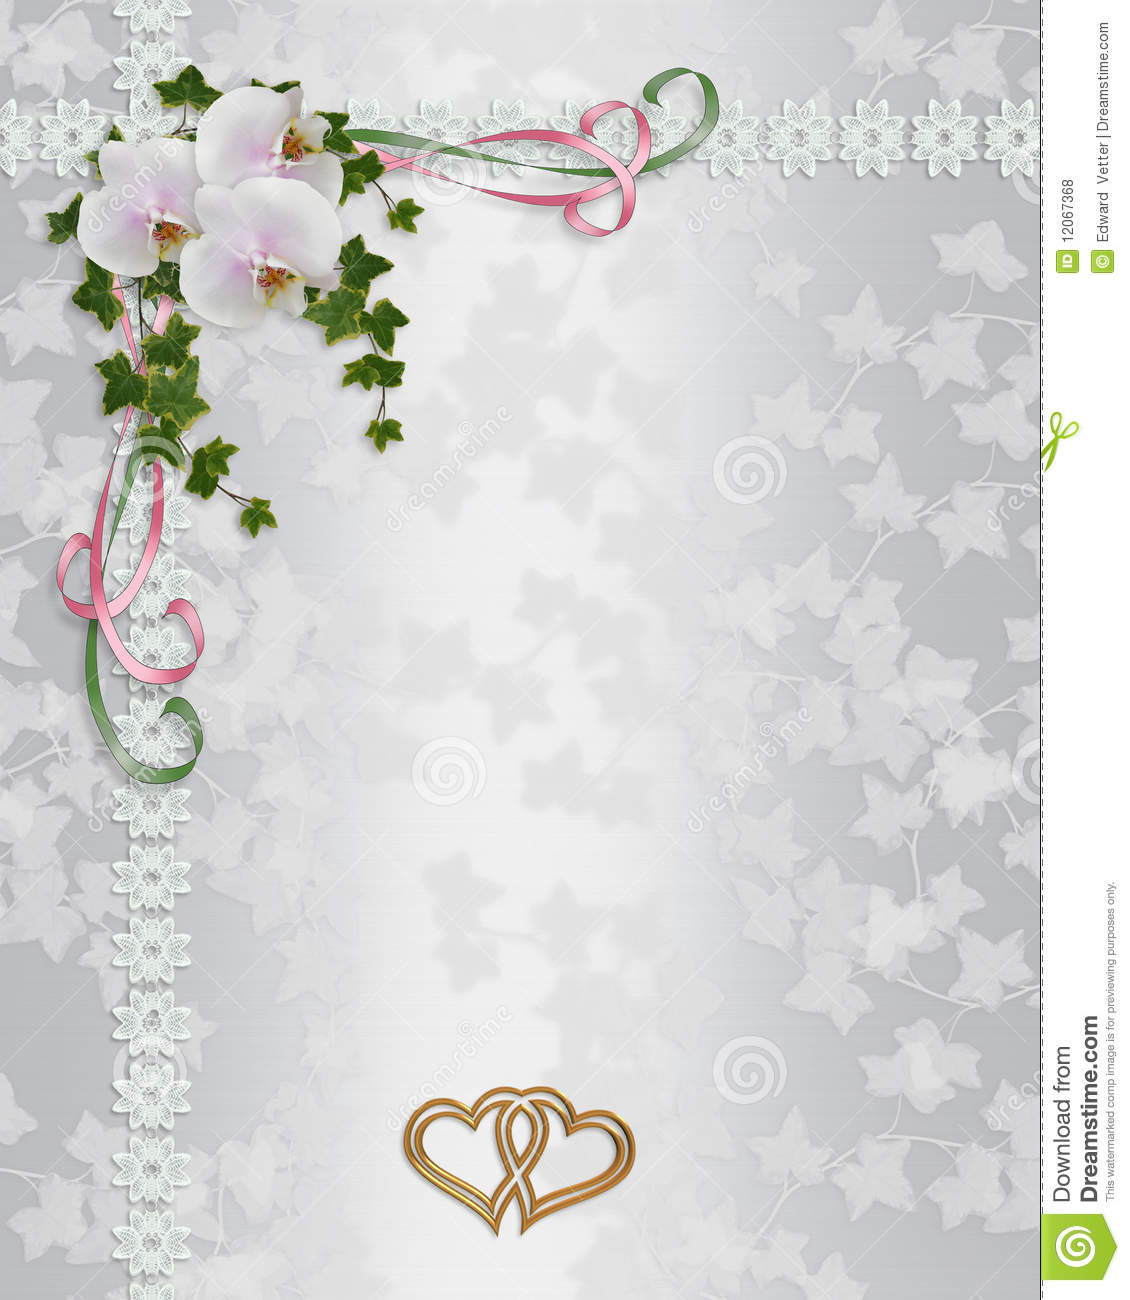 Orchids Wedding Invitation Border Stock Illustration - Image: 12067368